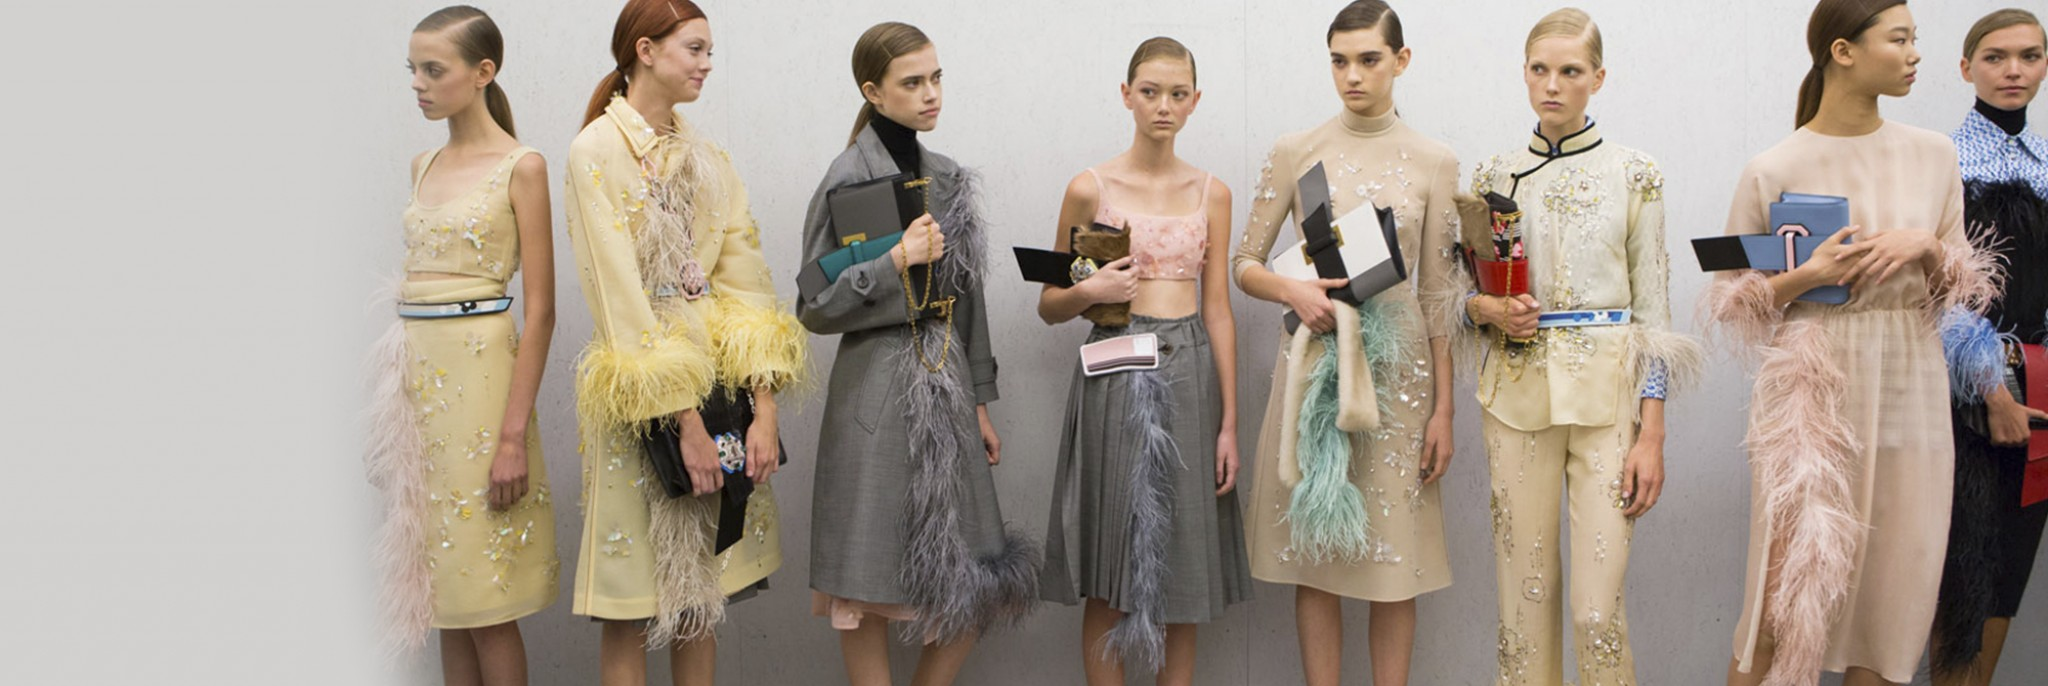 The 5 Micro Trends We Spotted at Milan Fashion Week